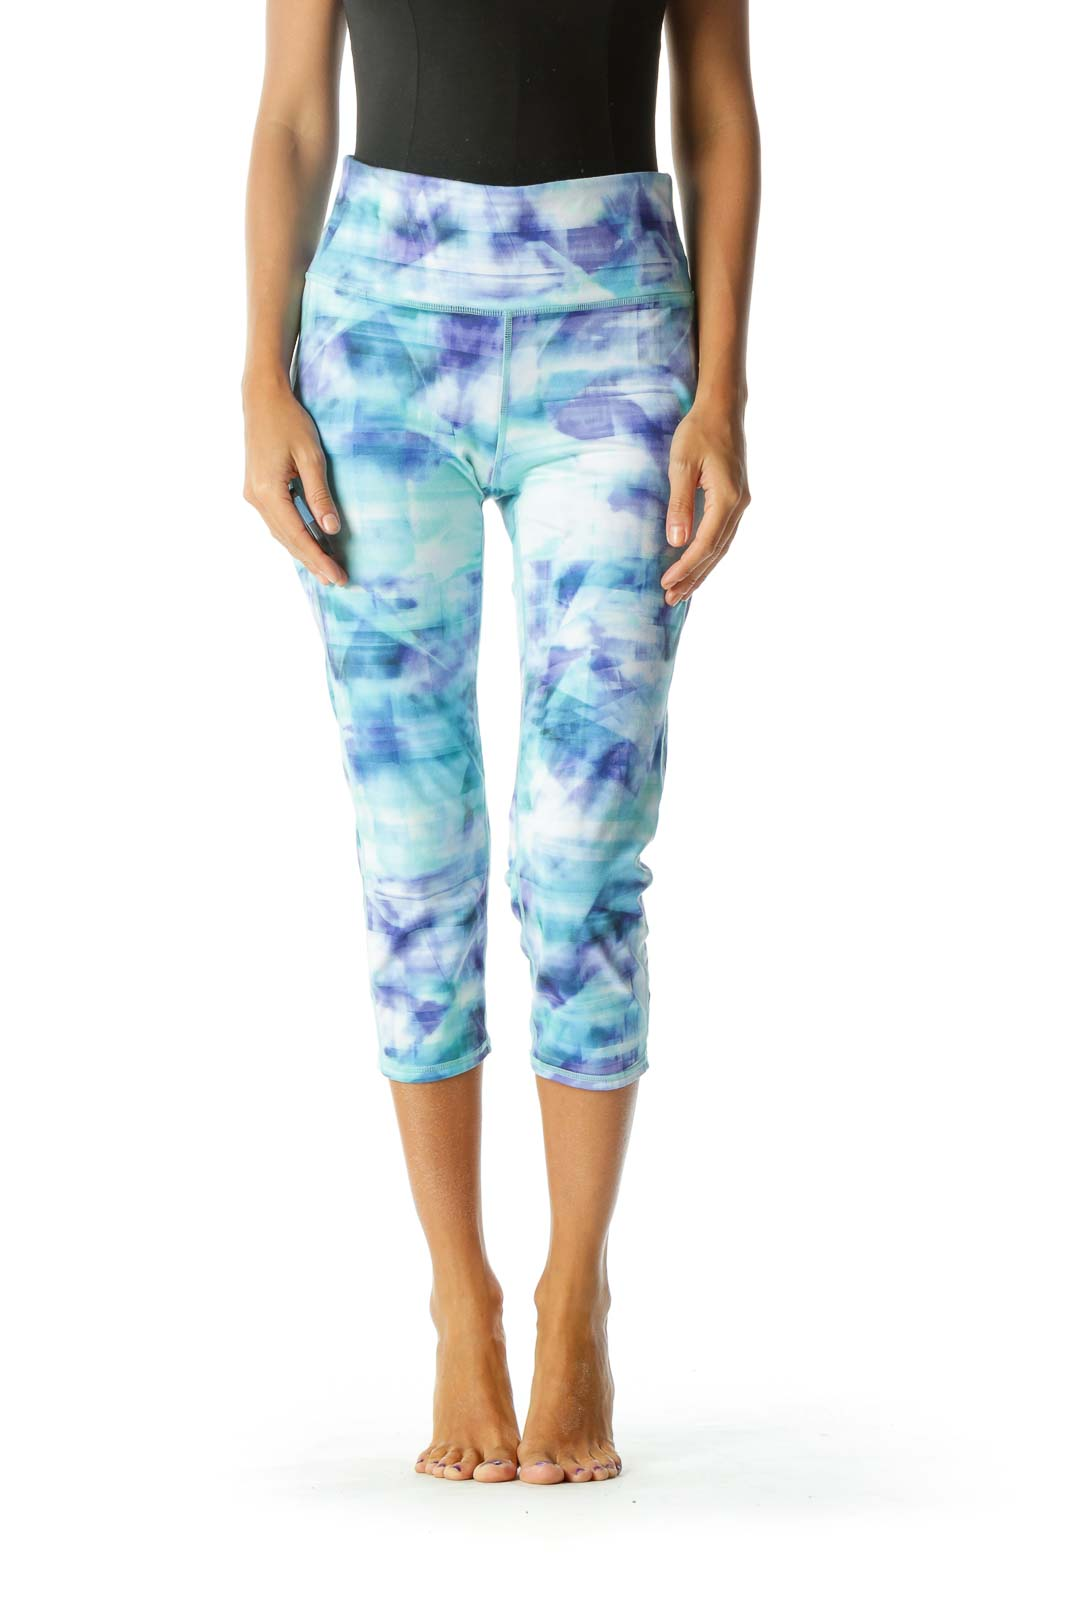 Blue Green & White Tie-Dye Yoga Pants